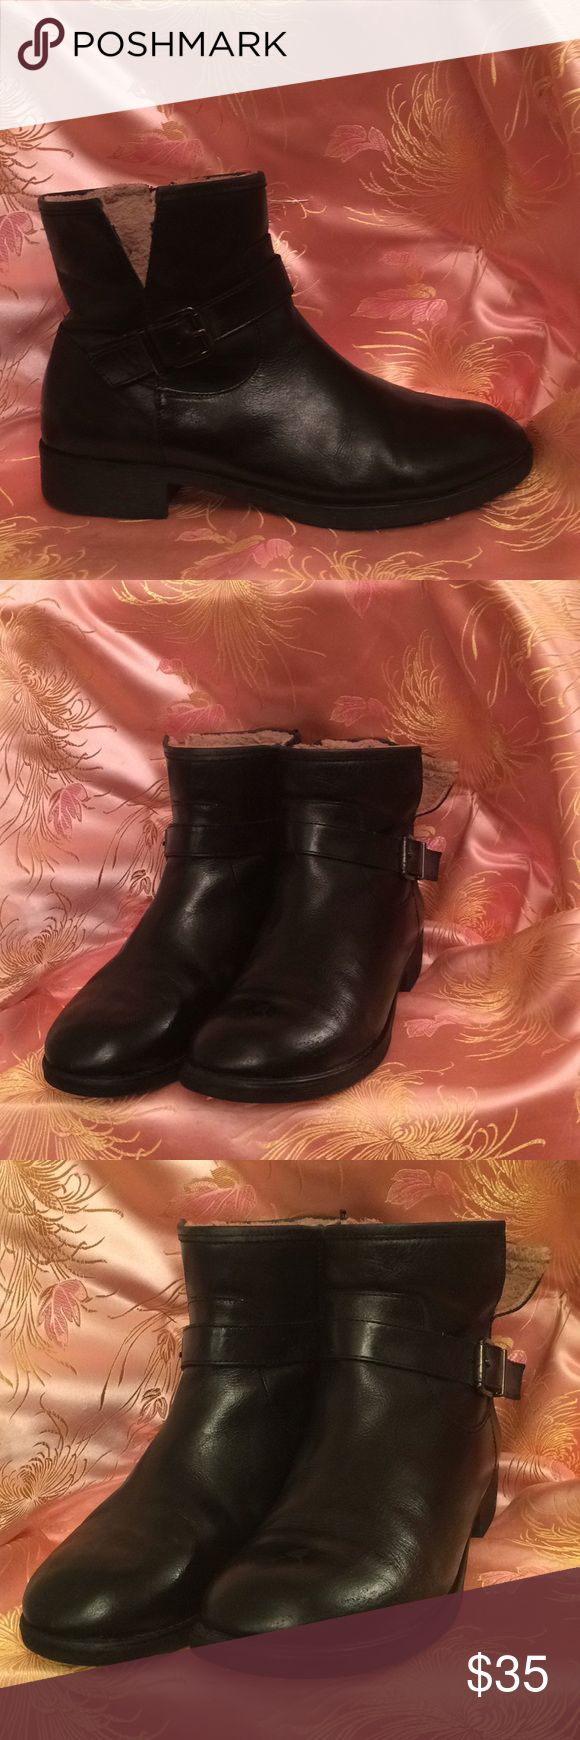 Easy spirits black ankle boots size 8 1/2 This is a very nice pair of ankle boots size 8.5 black in color  with a zipper on the inside buckle on the opposite side Easy spirit Shoes Ankle Boots & Booties